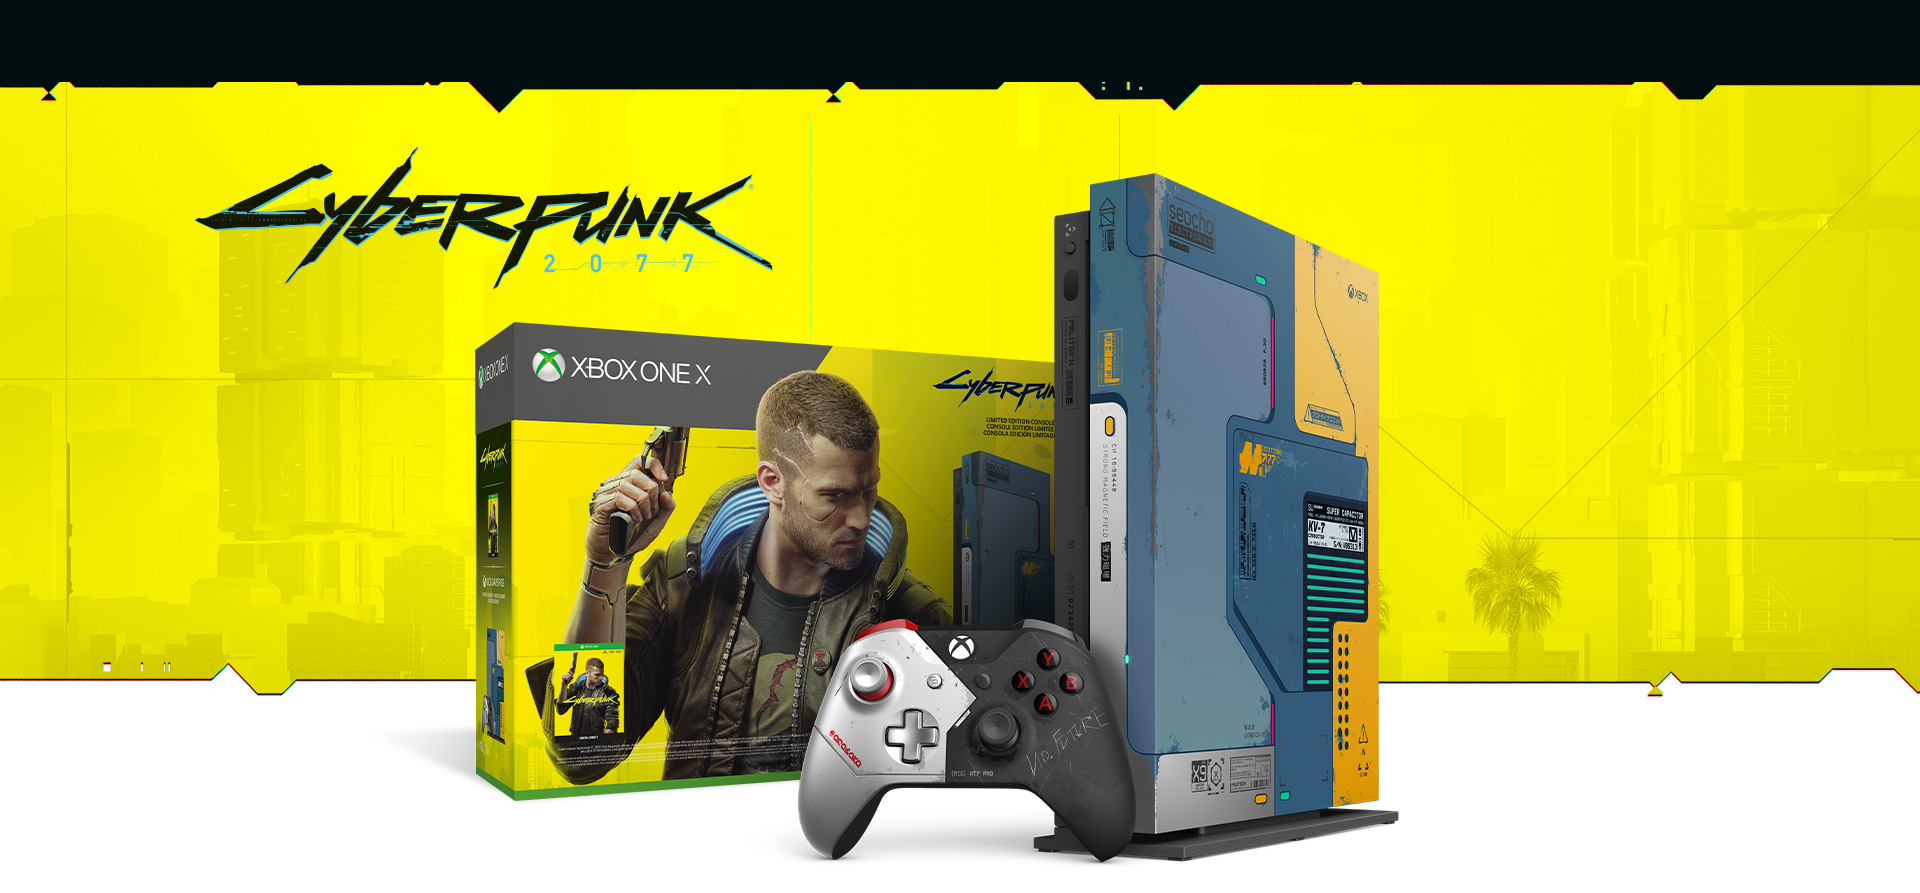 Cyberpunk 2077 Xbox One X Console and Controller